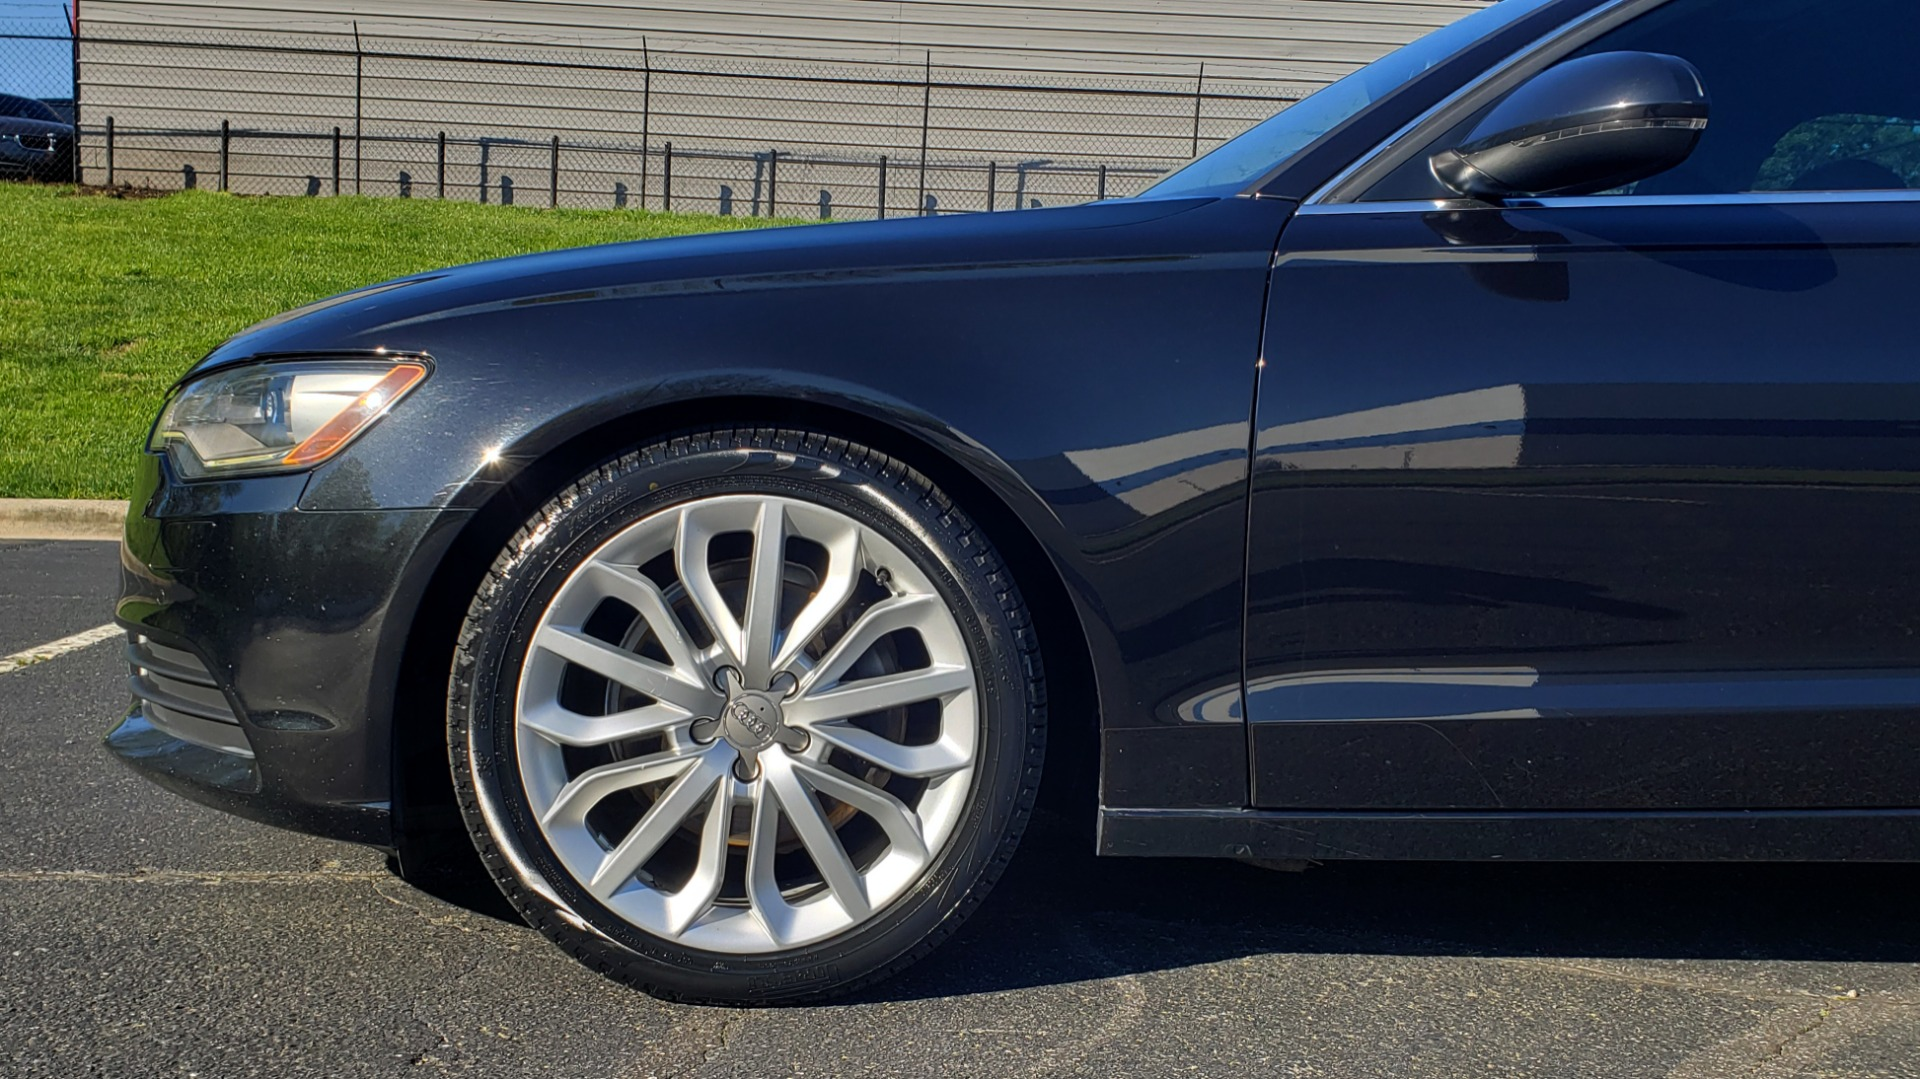 Used 2012 Audi A6 2.0T PREMIUM PLUS / NAV / SNRF / CVT TRANS / REARVIEW for sale Sold at Formula Imports in Charlotte NC 28227 6